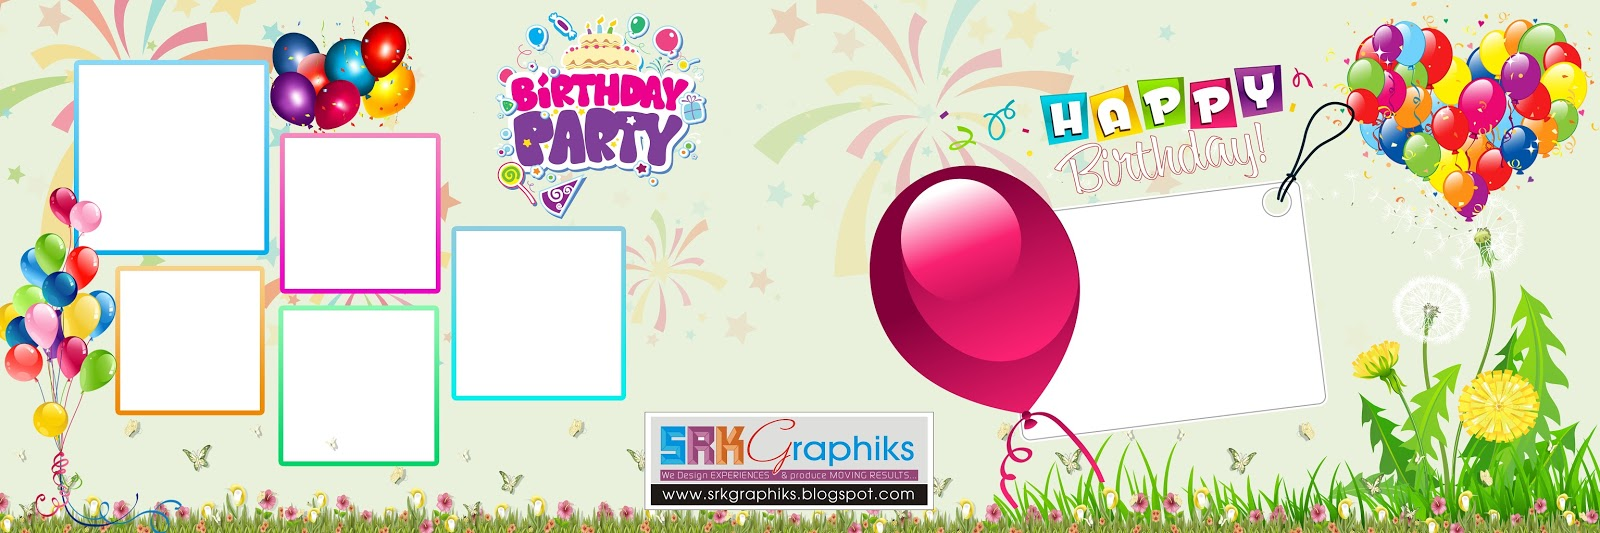 birthday album backgrounds hd ; birthday-album-design-backgrounds-psd-